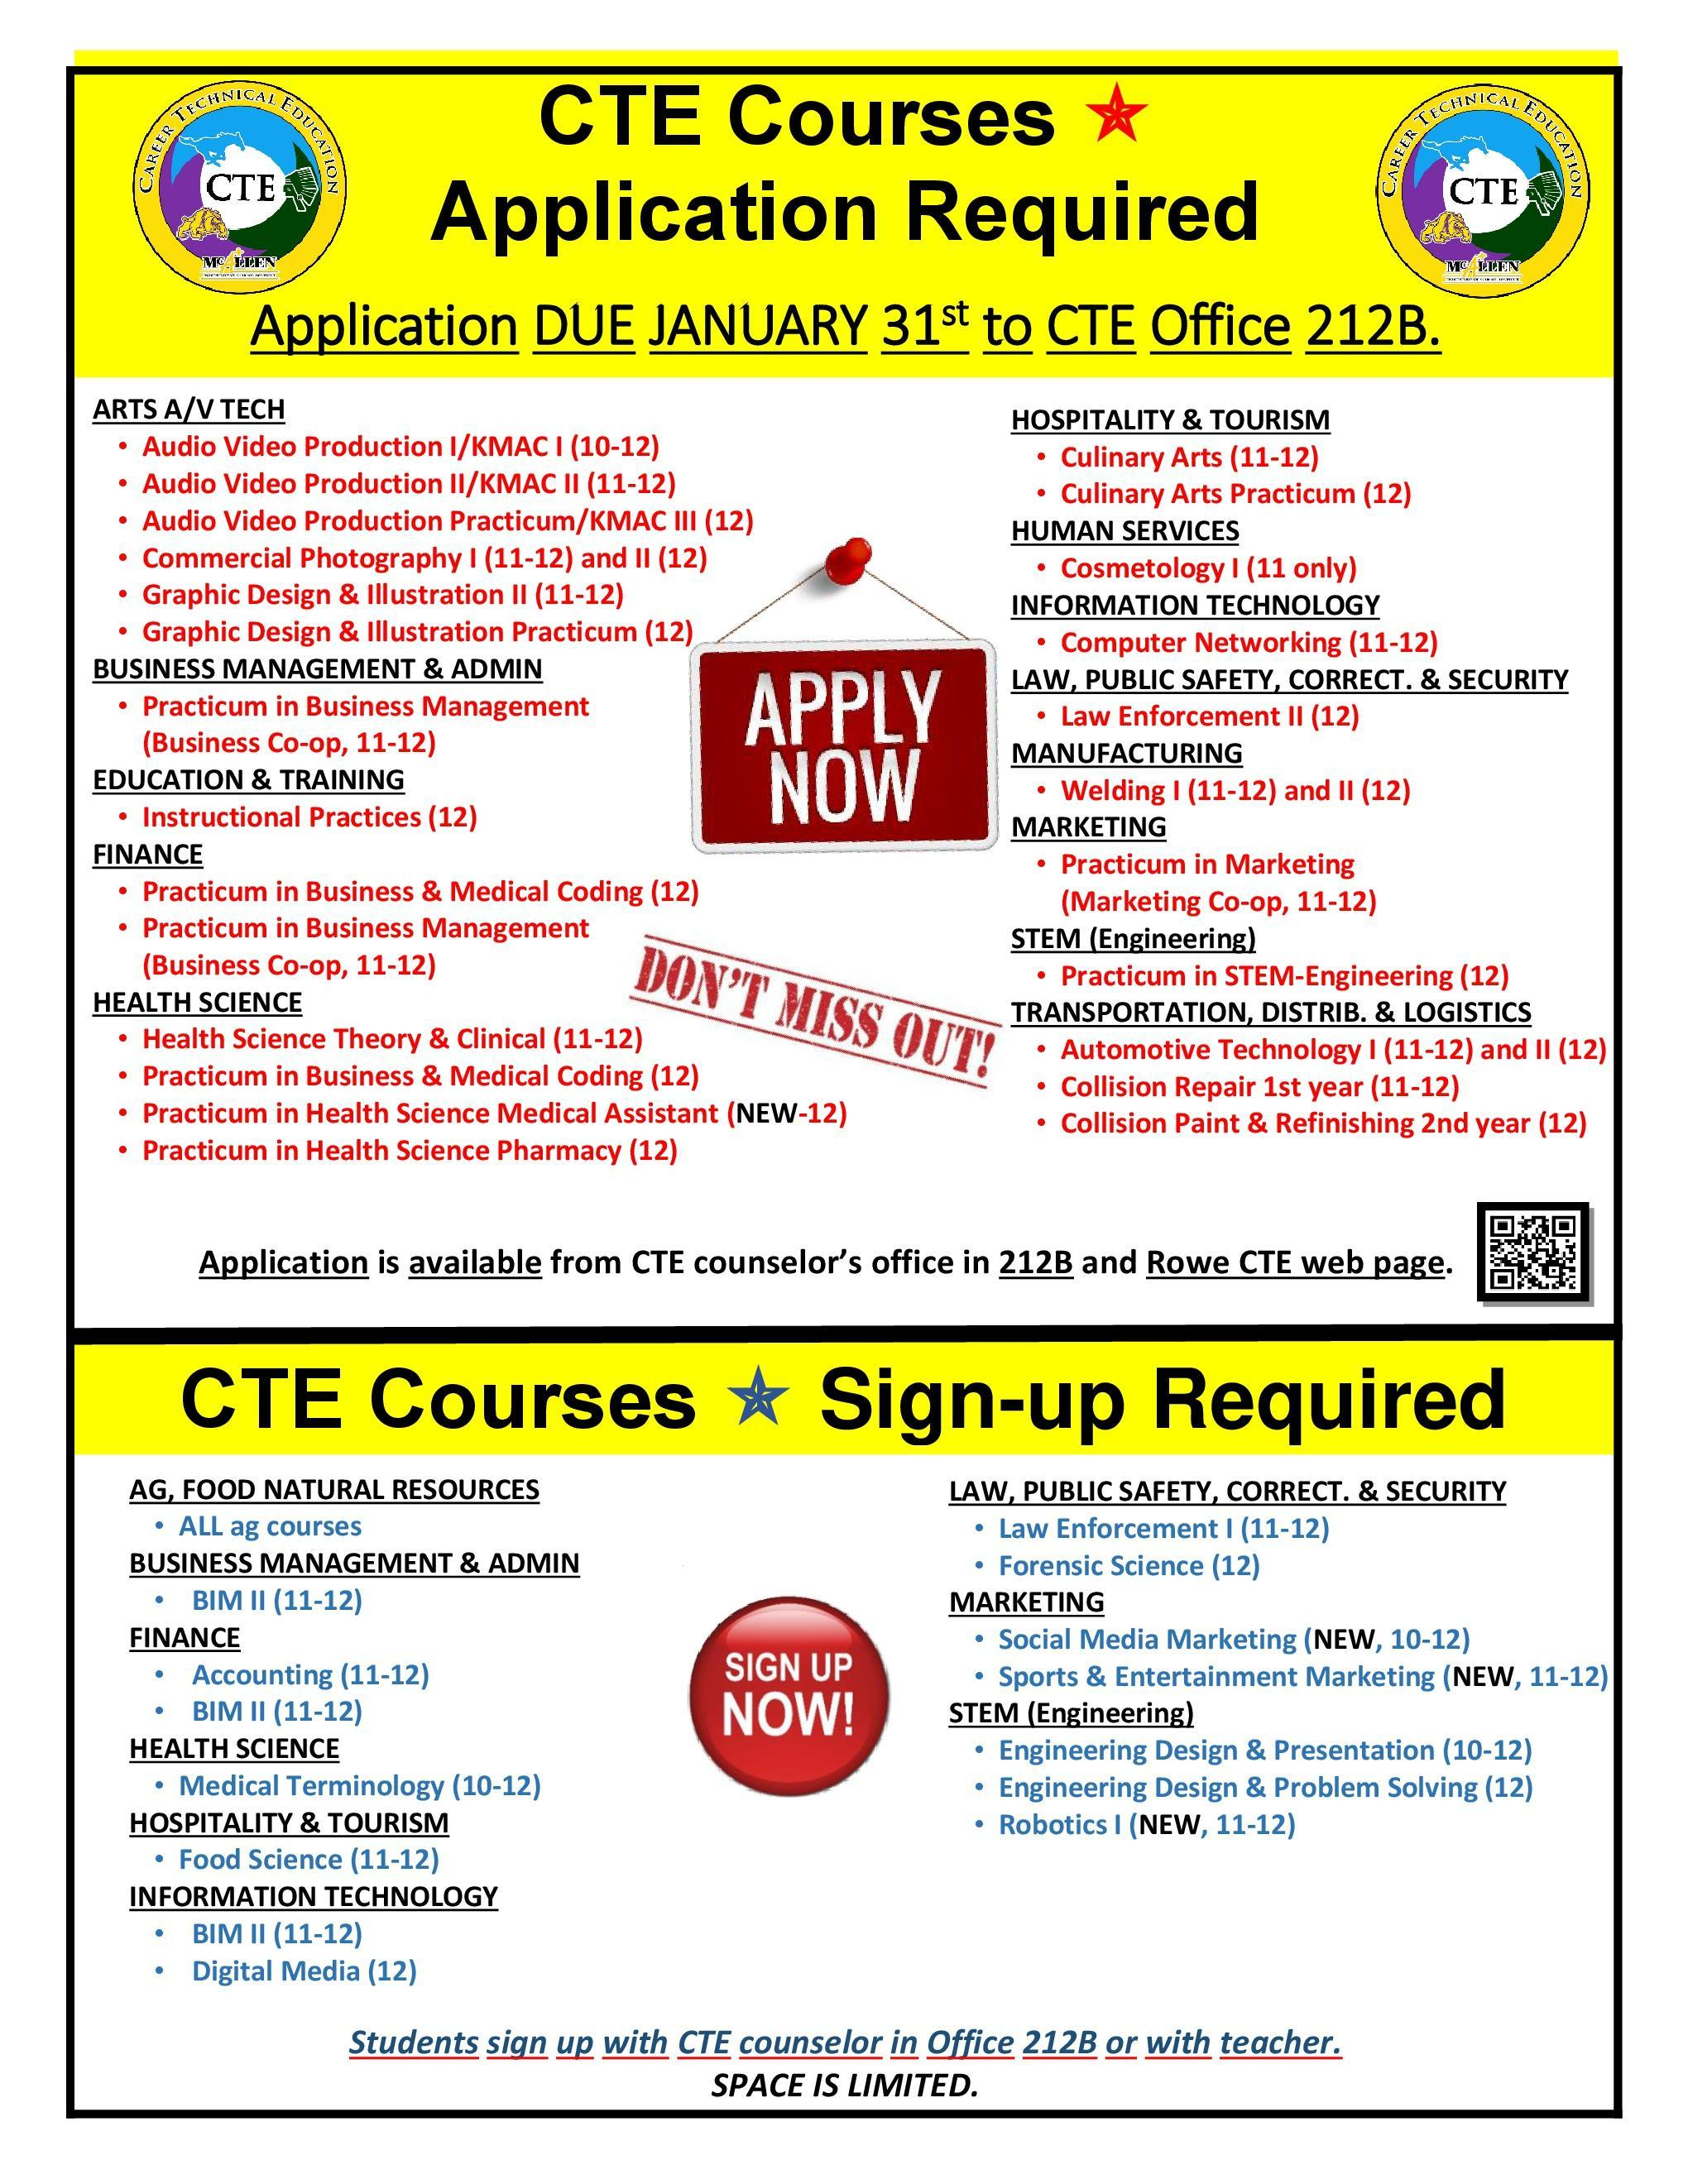 CTE Application and Sign-up Lists